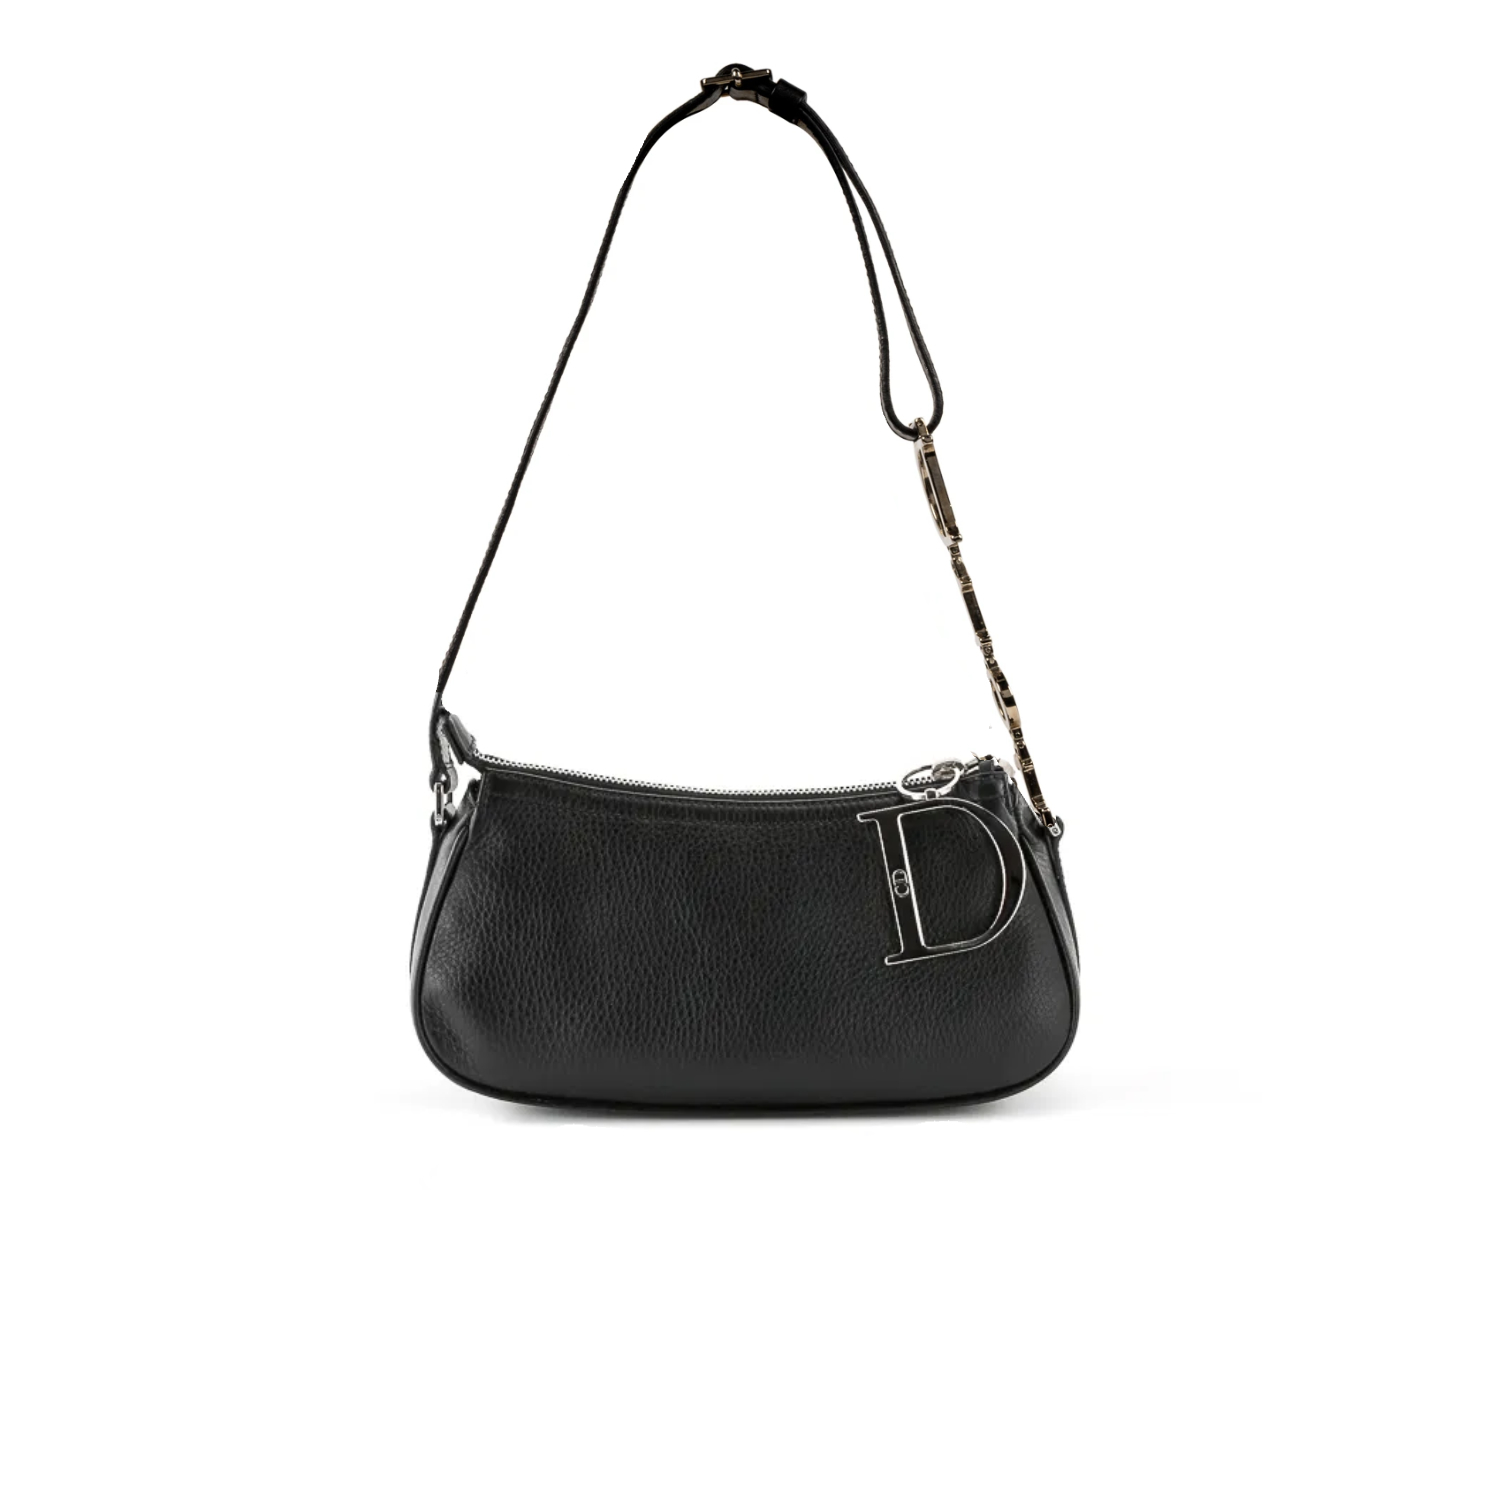 Dior Leather Baguette Baguette Bag with Silver Spellout Strap | NITRYL